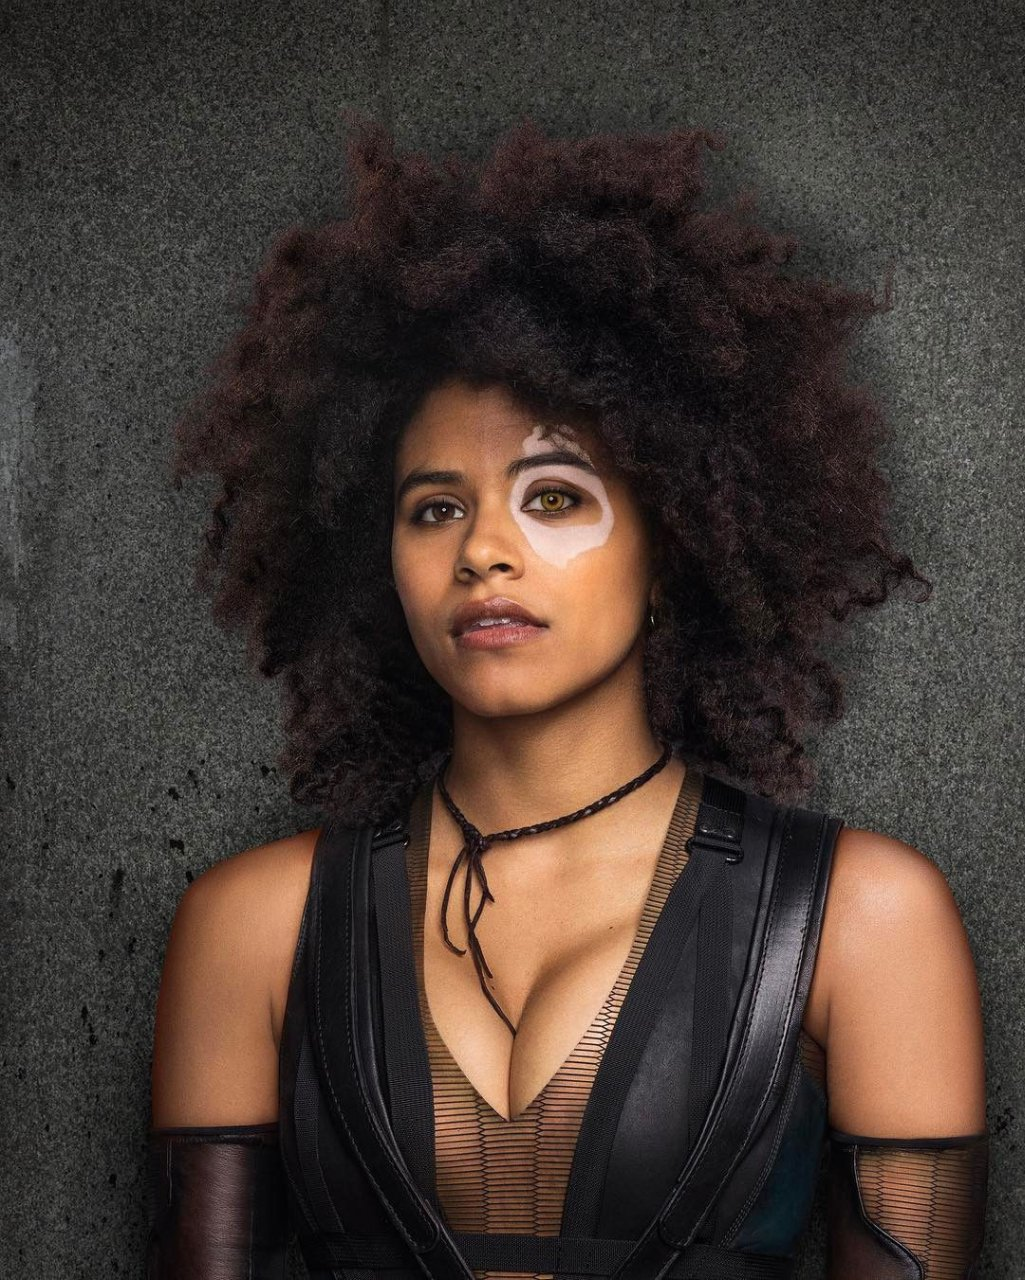 Topless Zazie Beetz nude photos 2019